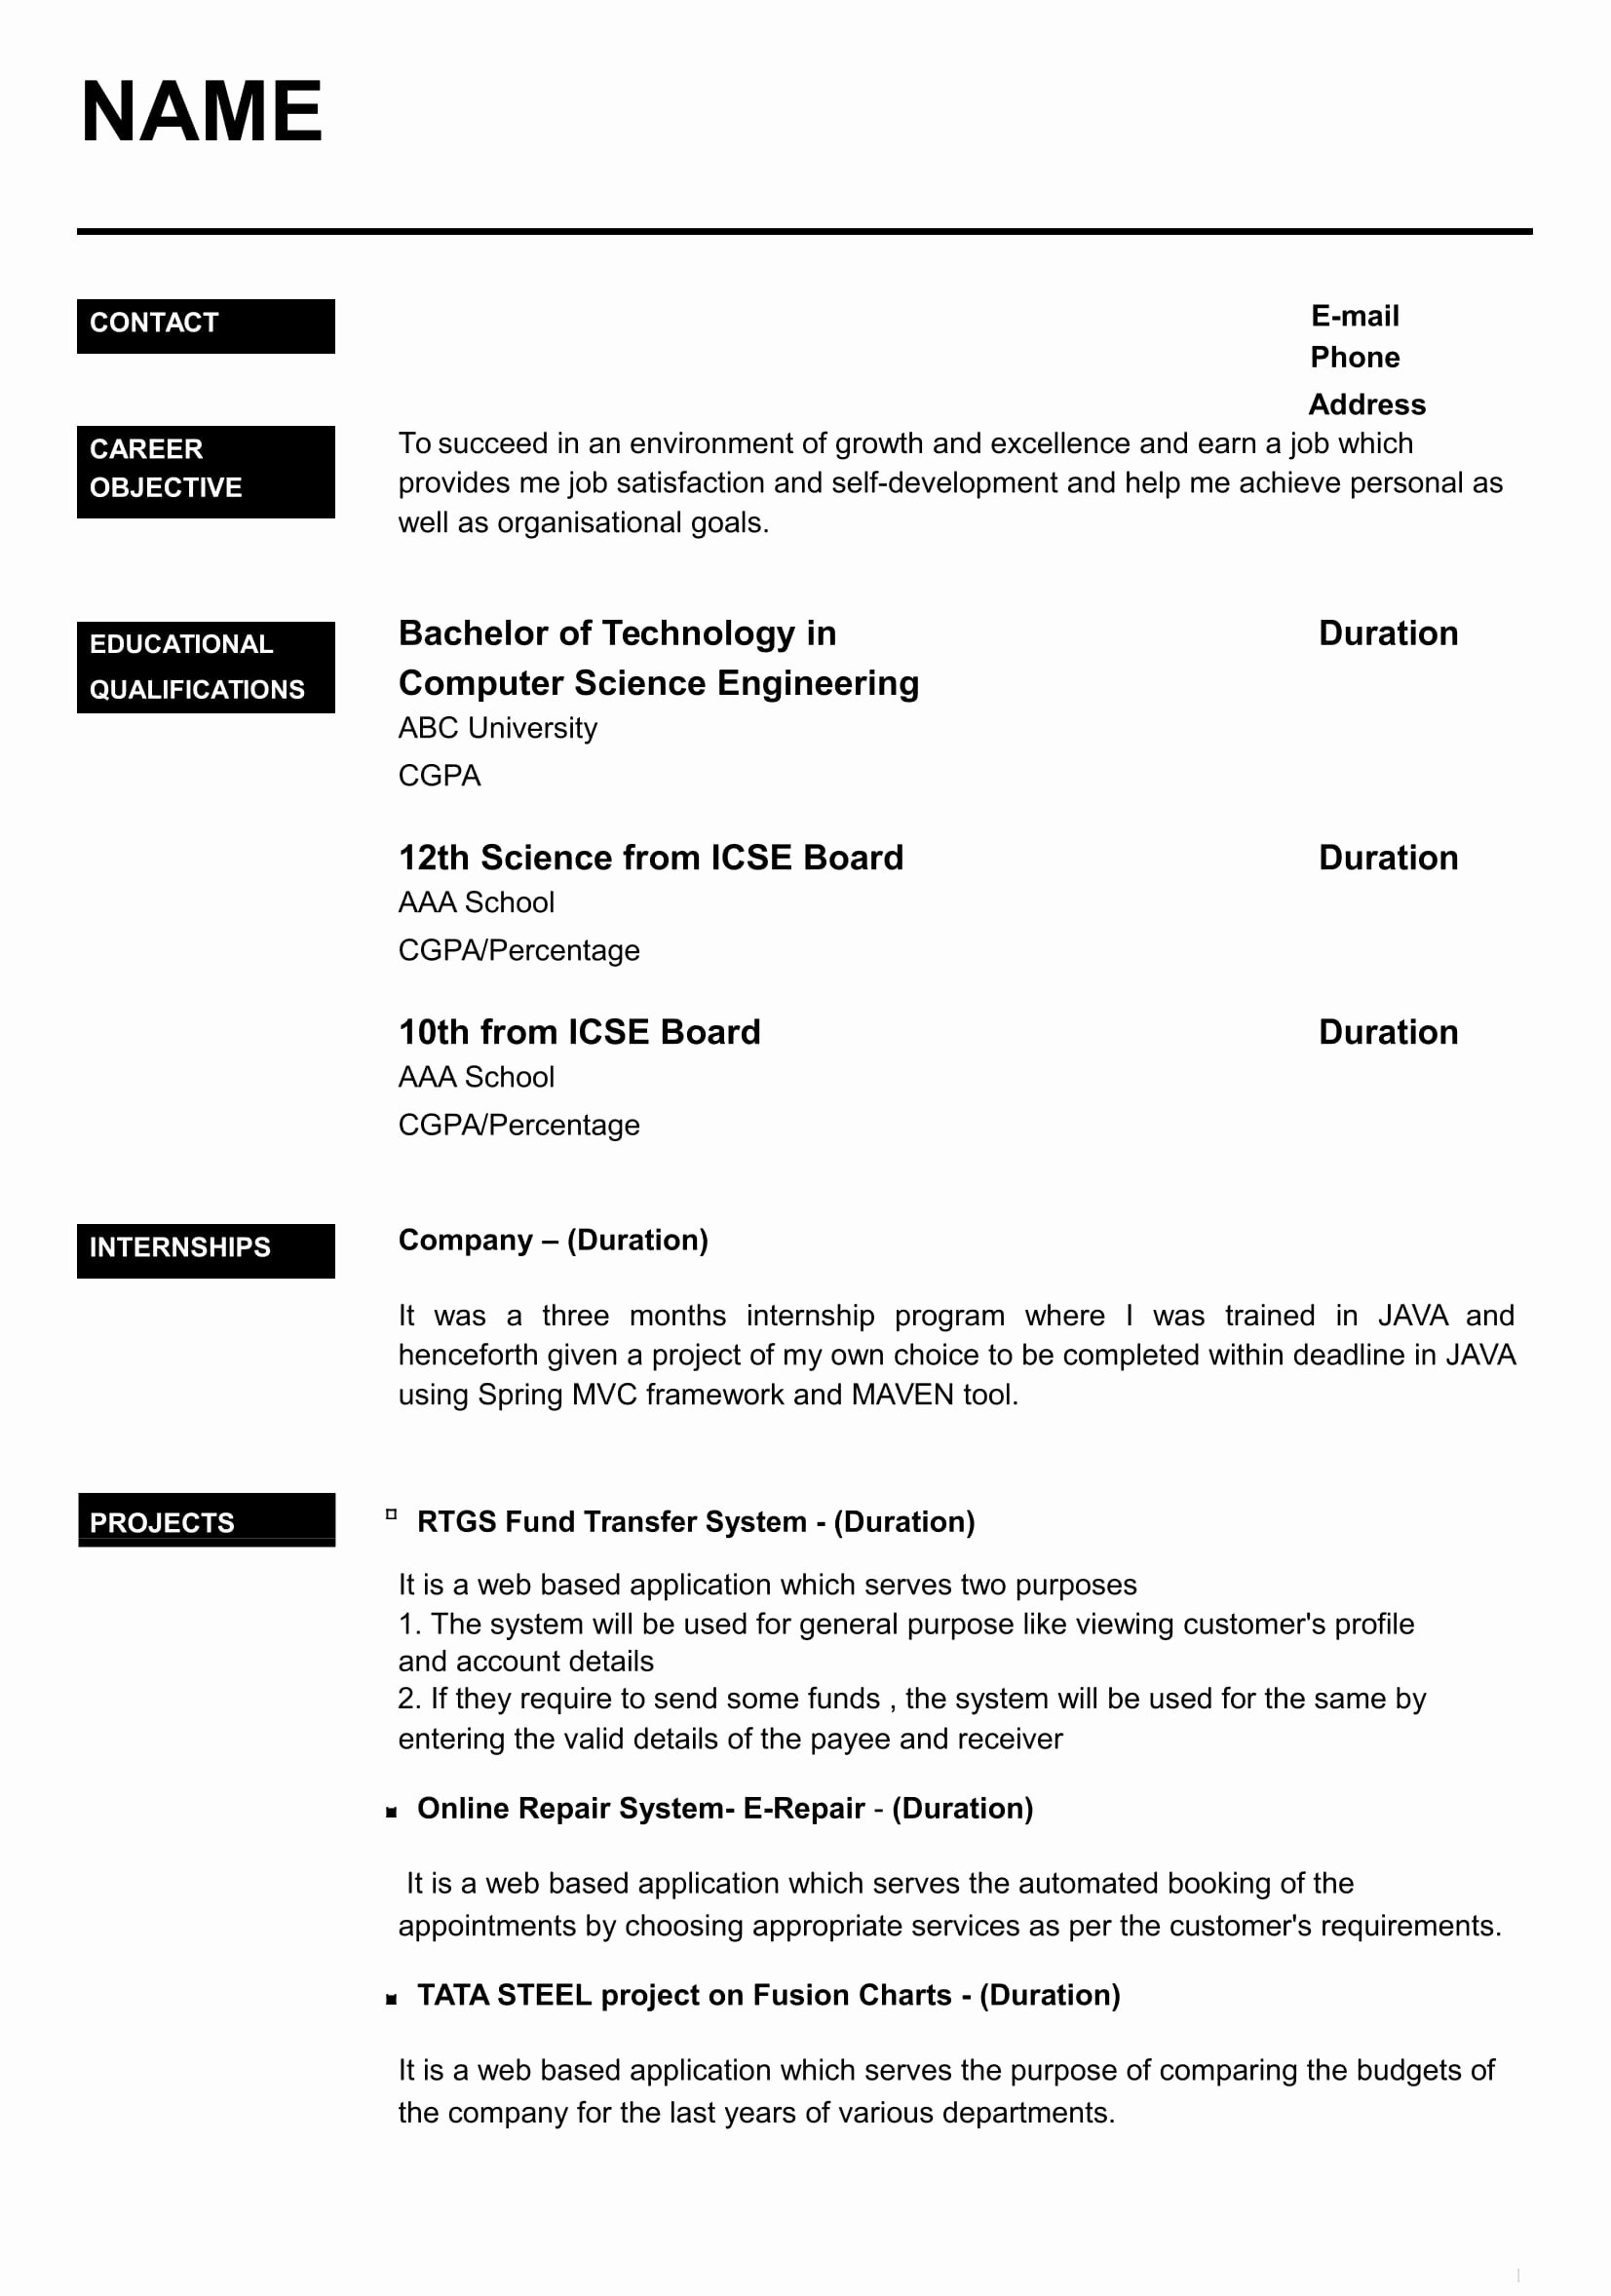 Sample Resume for Freshers Beautiful 32 Resume Templates for Freshers Download Free Word format